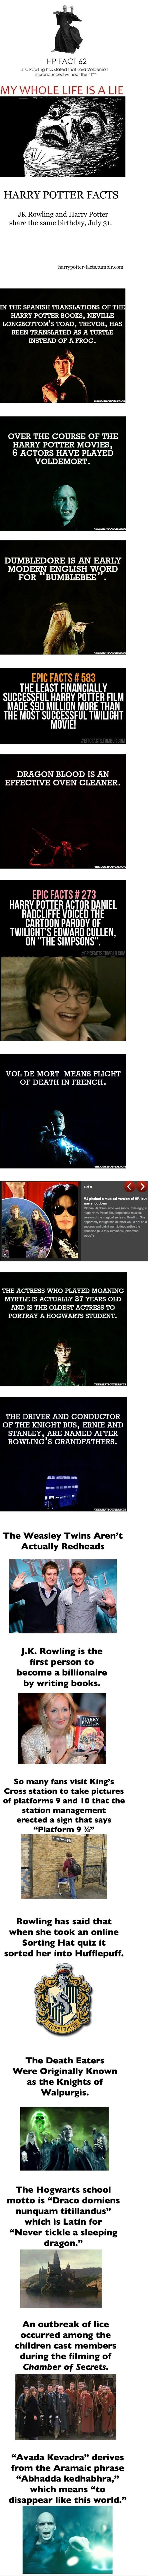 20 facts about Harry Potter - a lot of them I knew, but still pretty cool :D